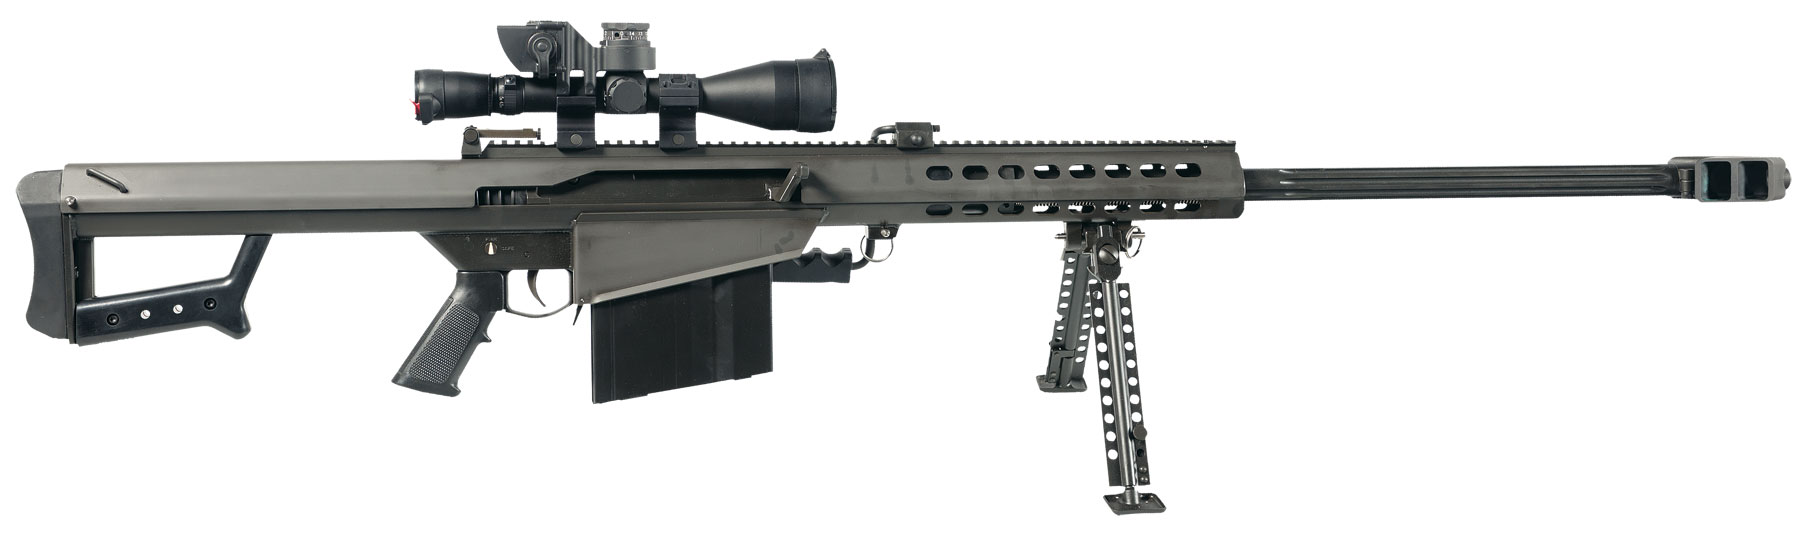 Our military uses the M82 Barrett rifle with great effectiveness to engage targets at long distances. It is an awesome weapon in the hands of a trained sniper team. It does not belong on a cruising boat.